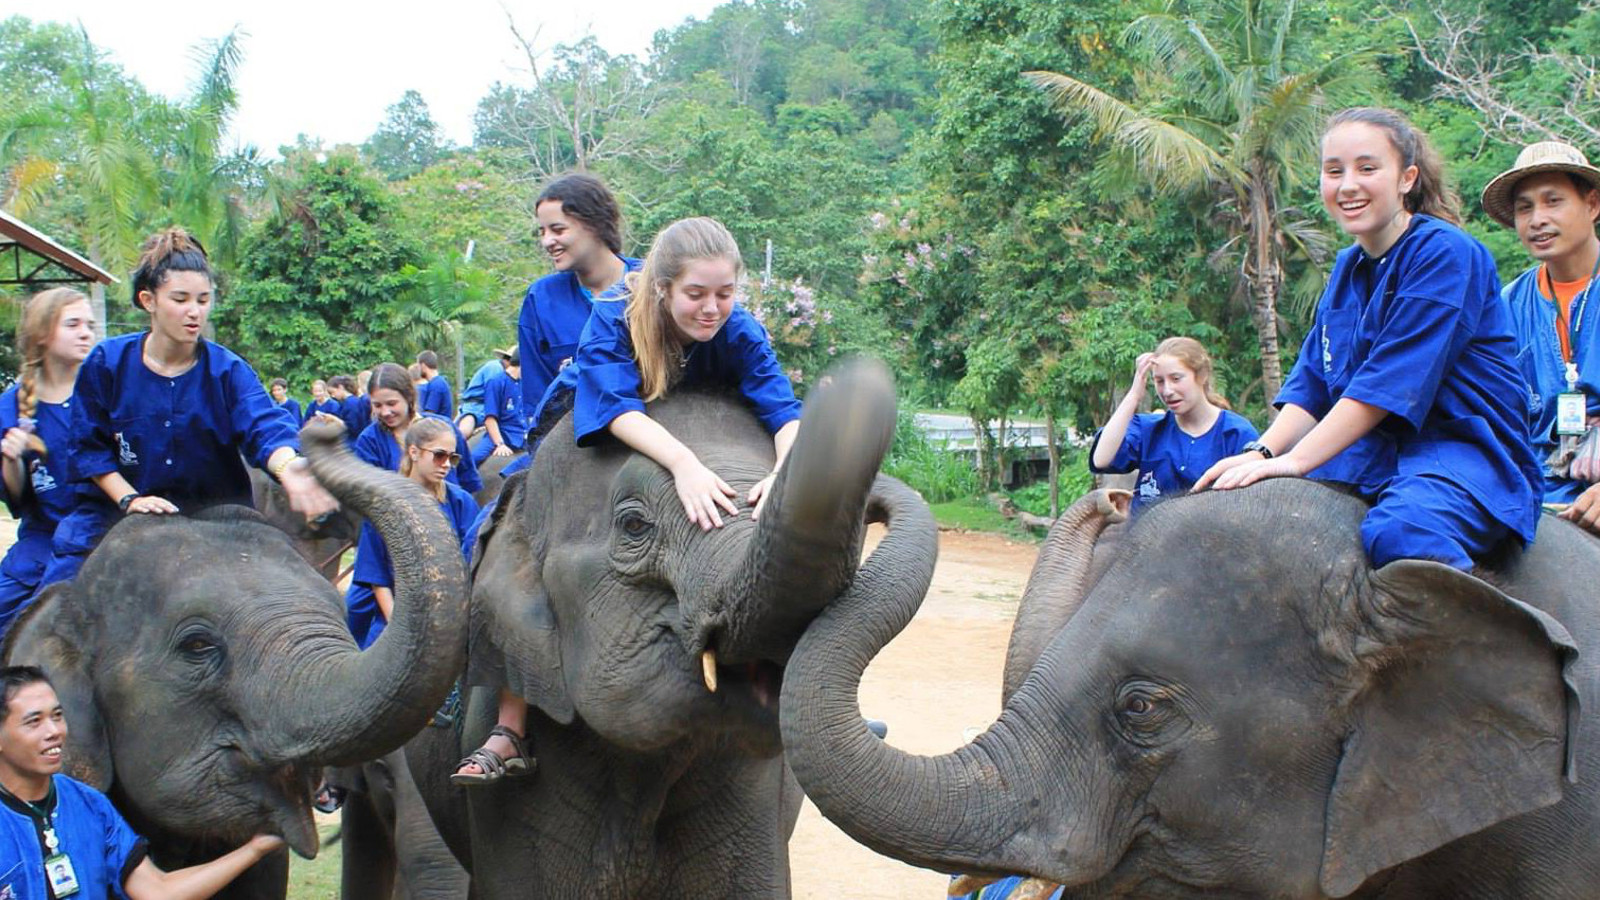 Summer Program - Preserving the Environment | ARCC Programs | Thailand: Elephant Experience